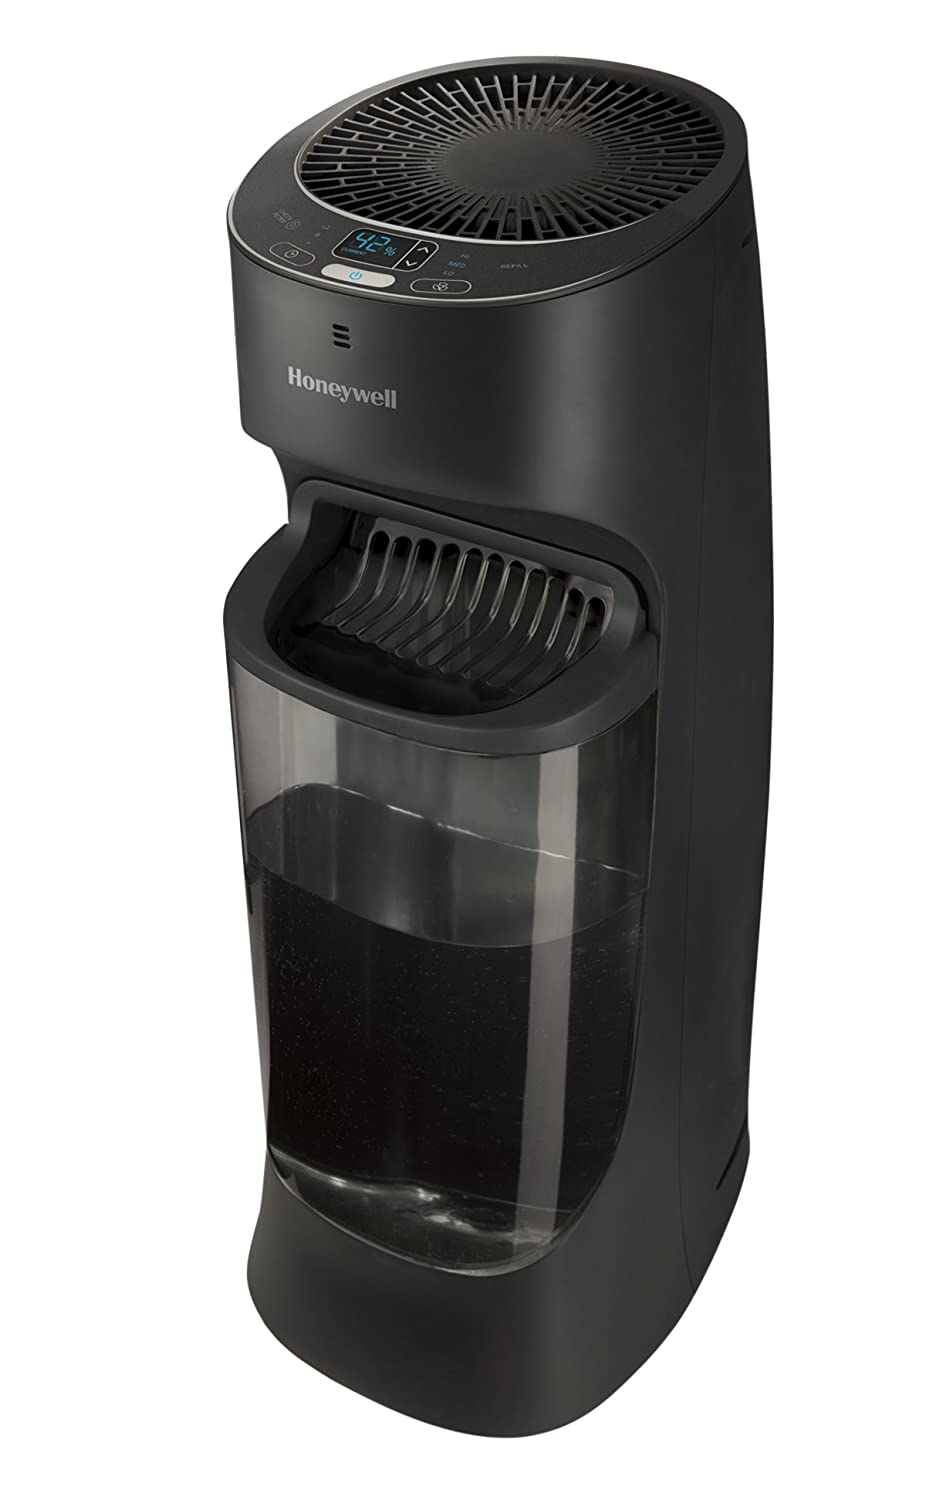 Honeywell Top Fill Digital Humidistat Tower Humidifier Black